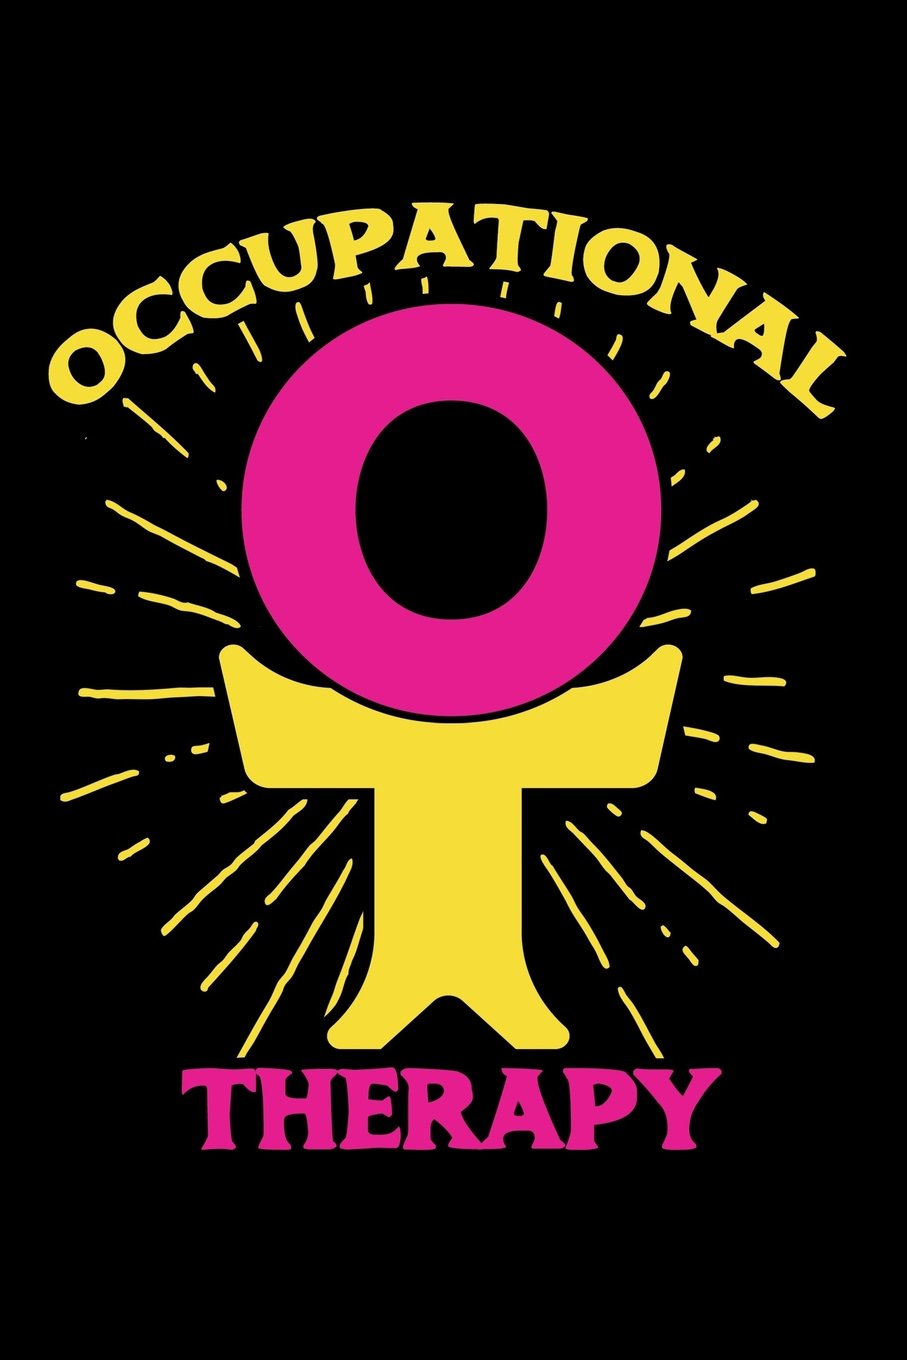 Download OT Notebook Occupational Therapy: Occupational Therapist Gifts / OT Journal for Writing Notes / Occupational Therapist Graduation Gifts for Classroom Student / 6x9 Journal 110 Blank Lined pages pdf epub